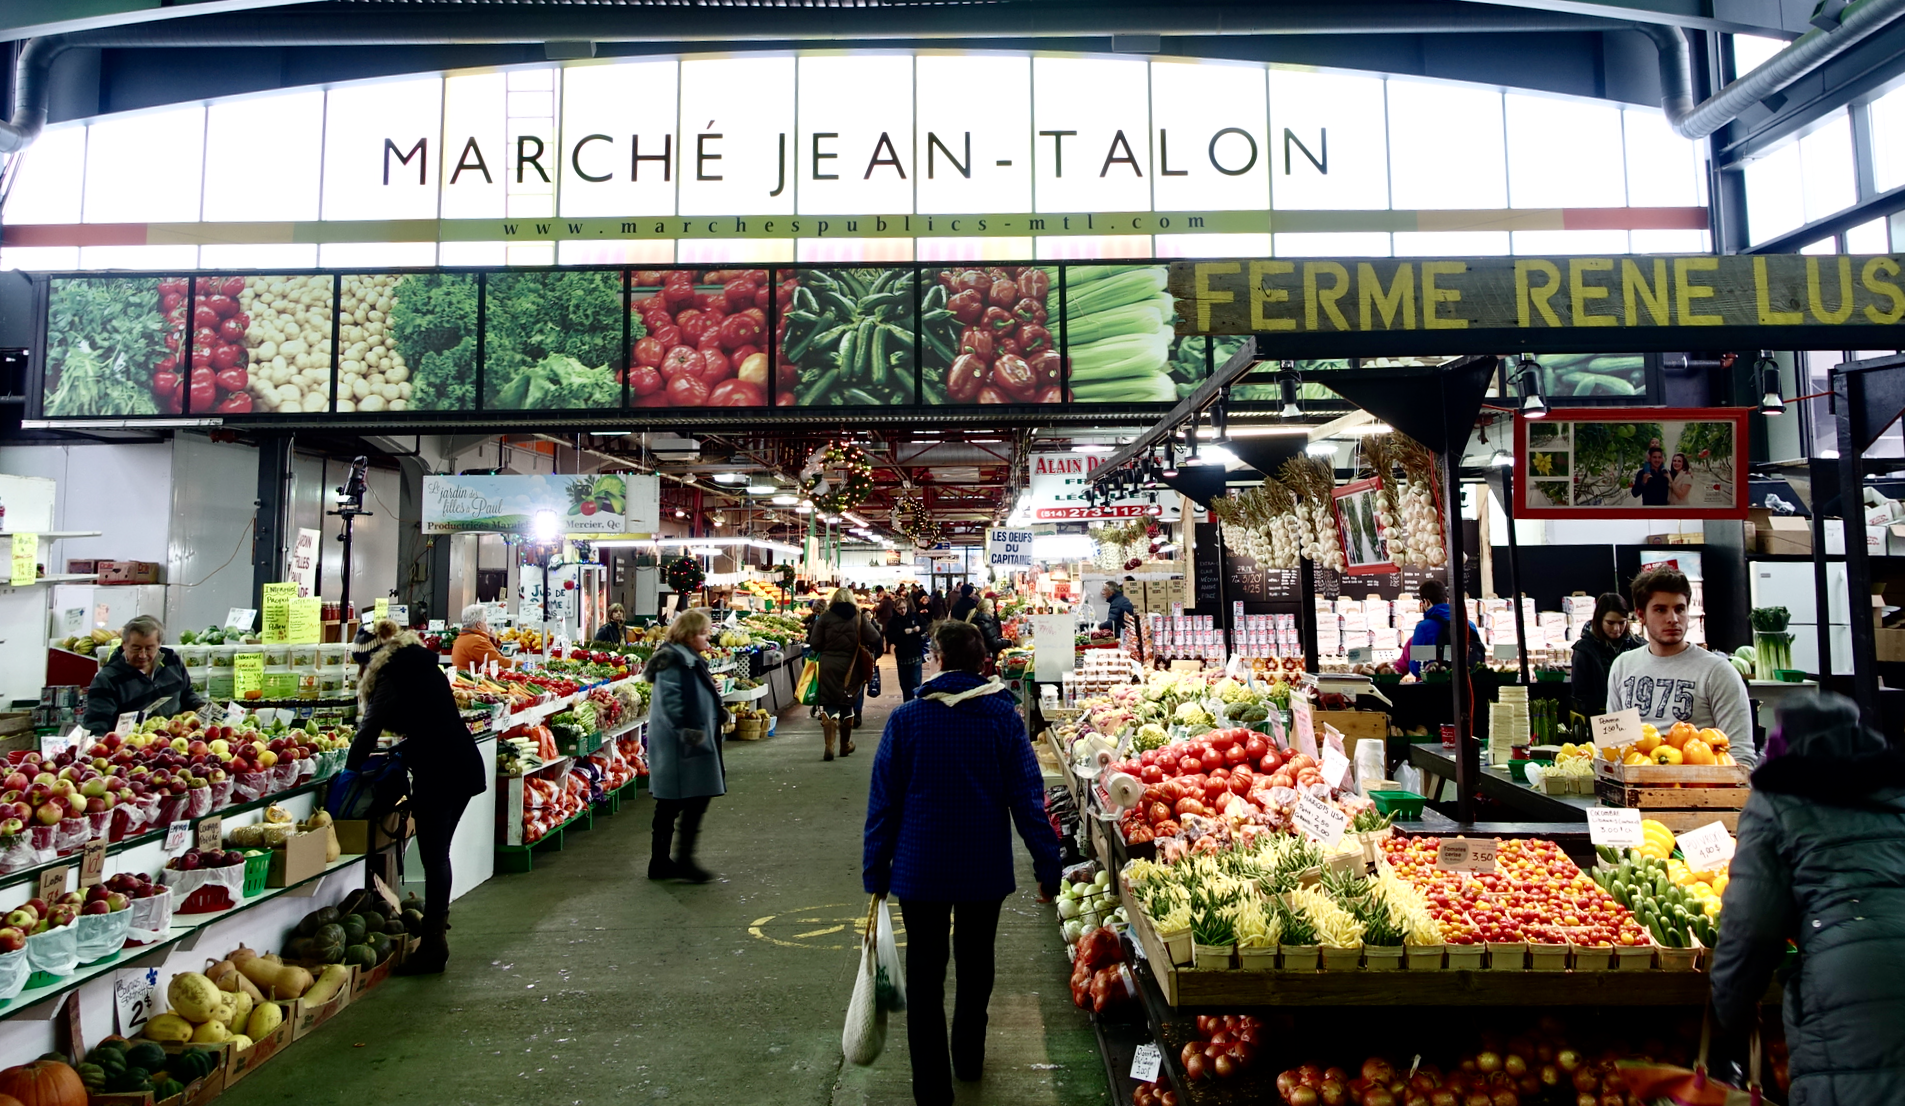 Montreal's two markets add a very European flavour to the city.